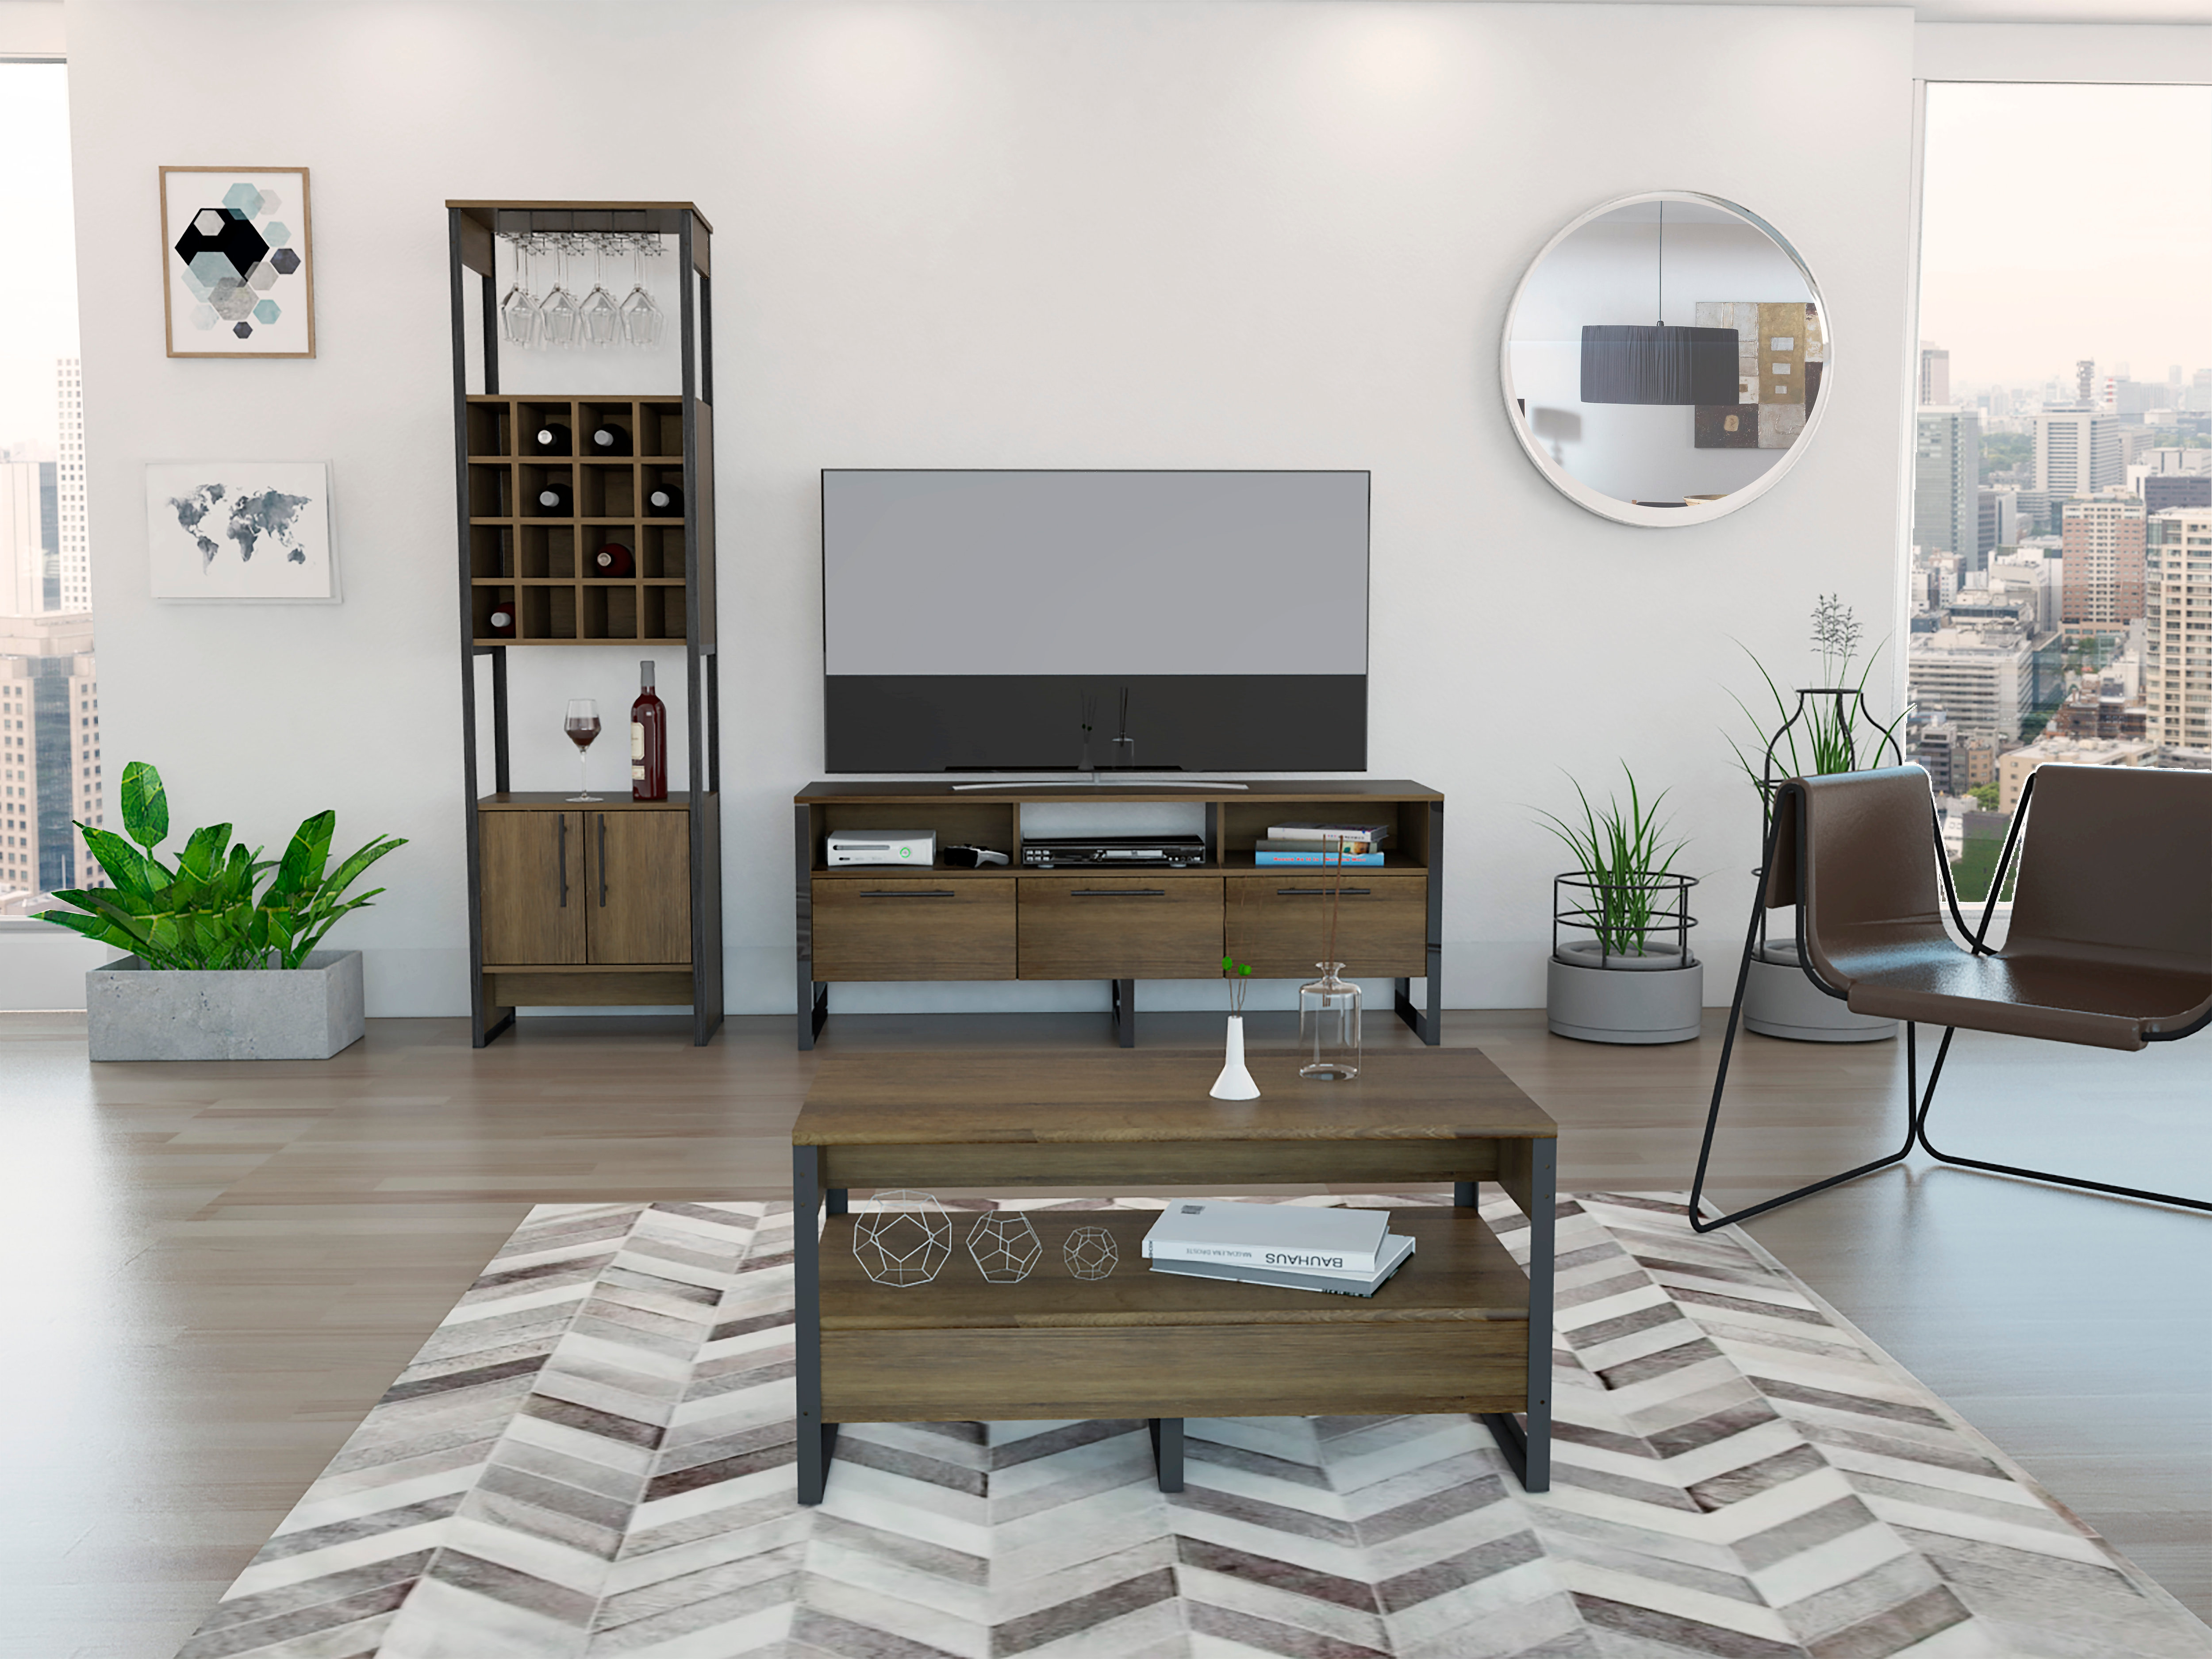 3 PC Living Room Set Magnum - Includes Bar Cabinet + Tv Stand + Coffee Table